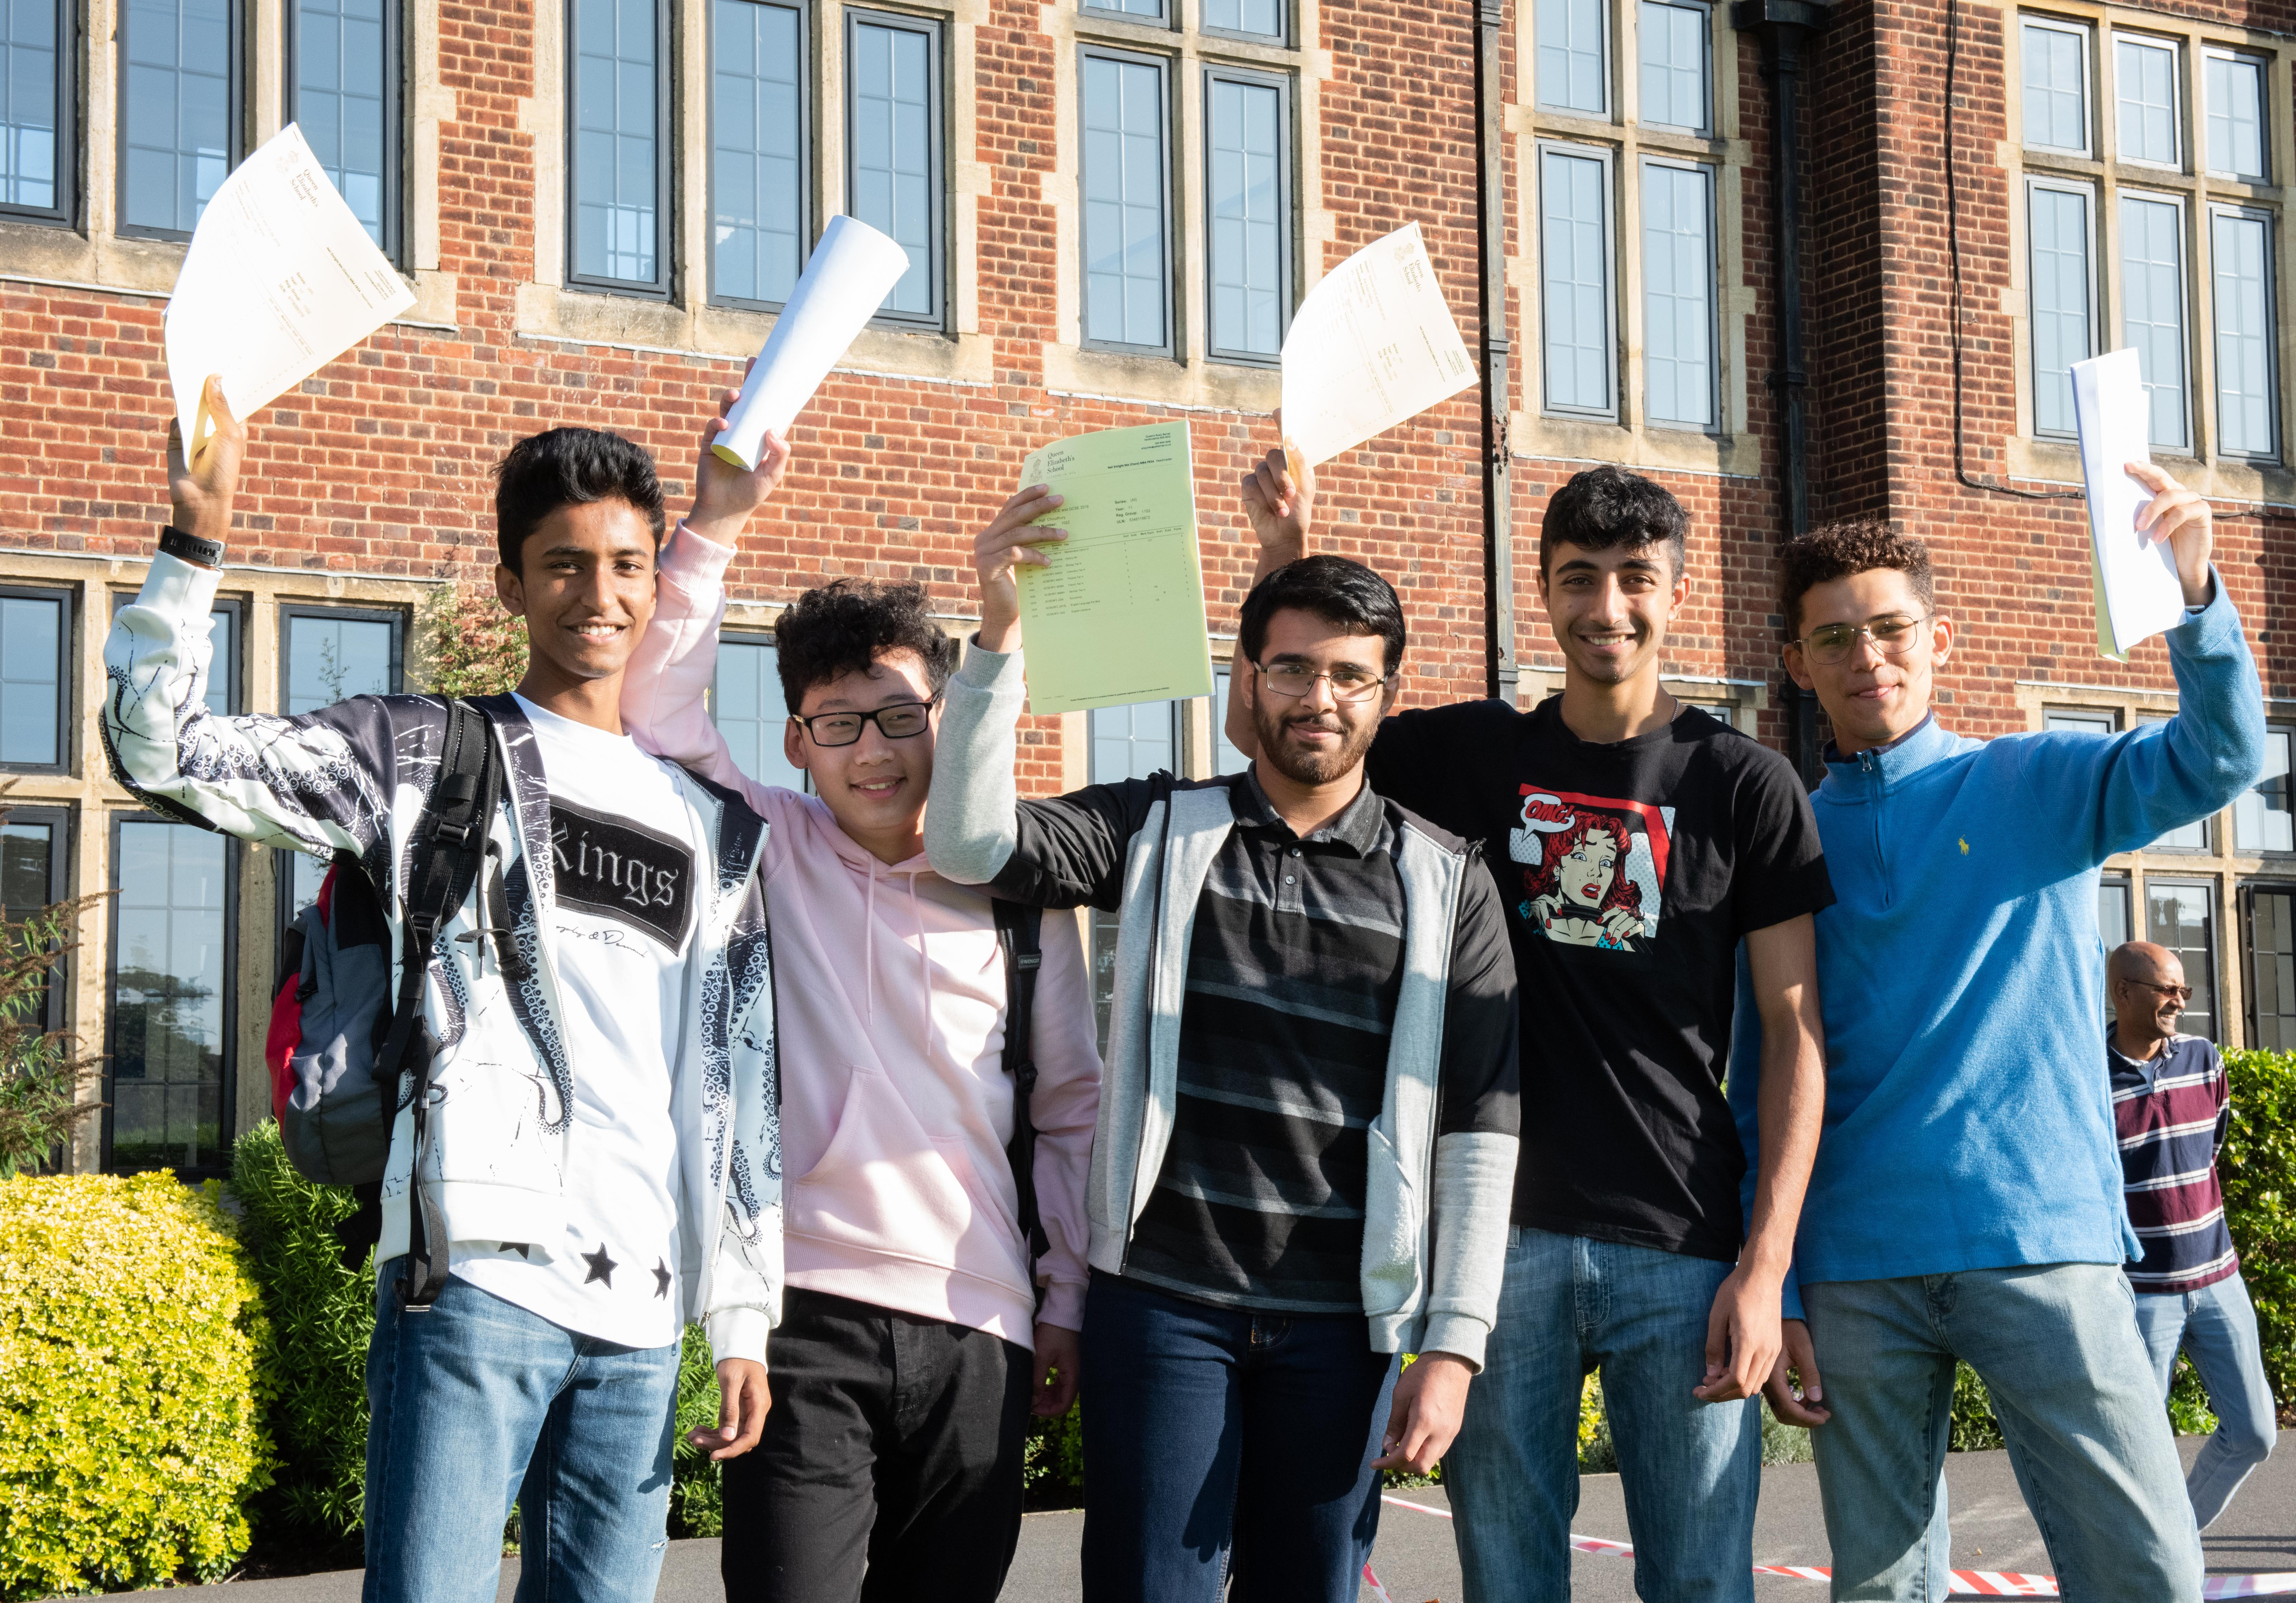 Students across the country are celebrating their GCSE results this week. Pictured are pupils from Queen Elizabeth's School, north London, receiving their record breaking grades.  (Photo credit: Eleanor Bentall)